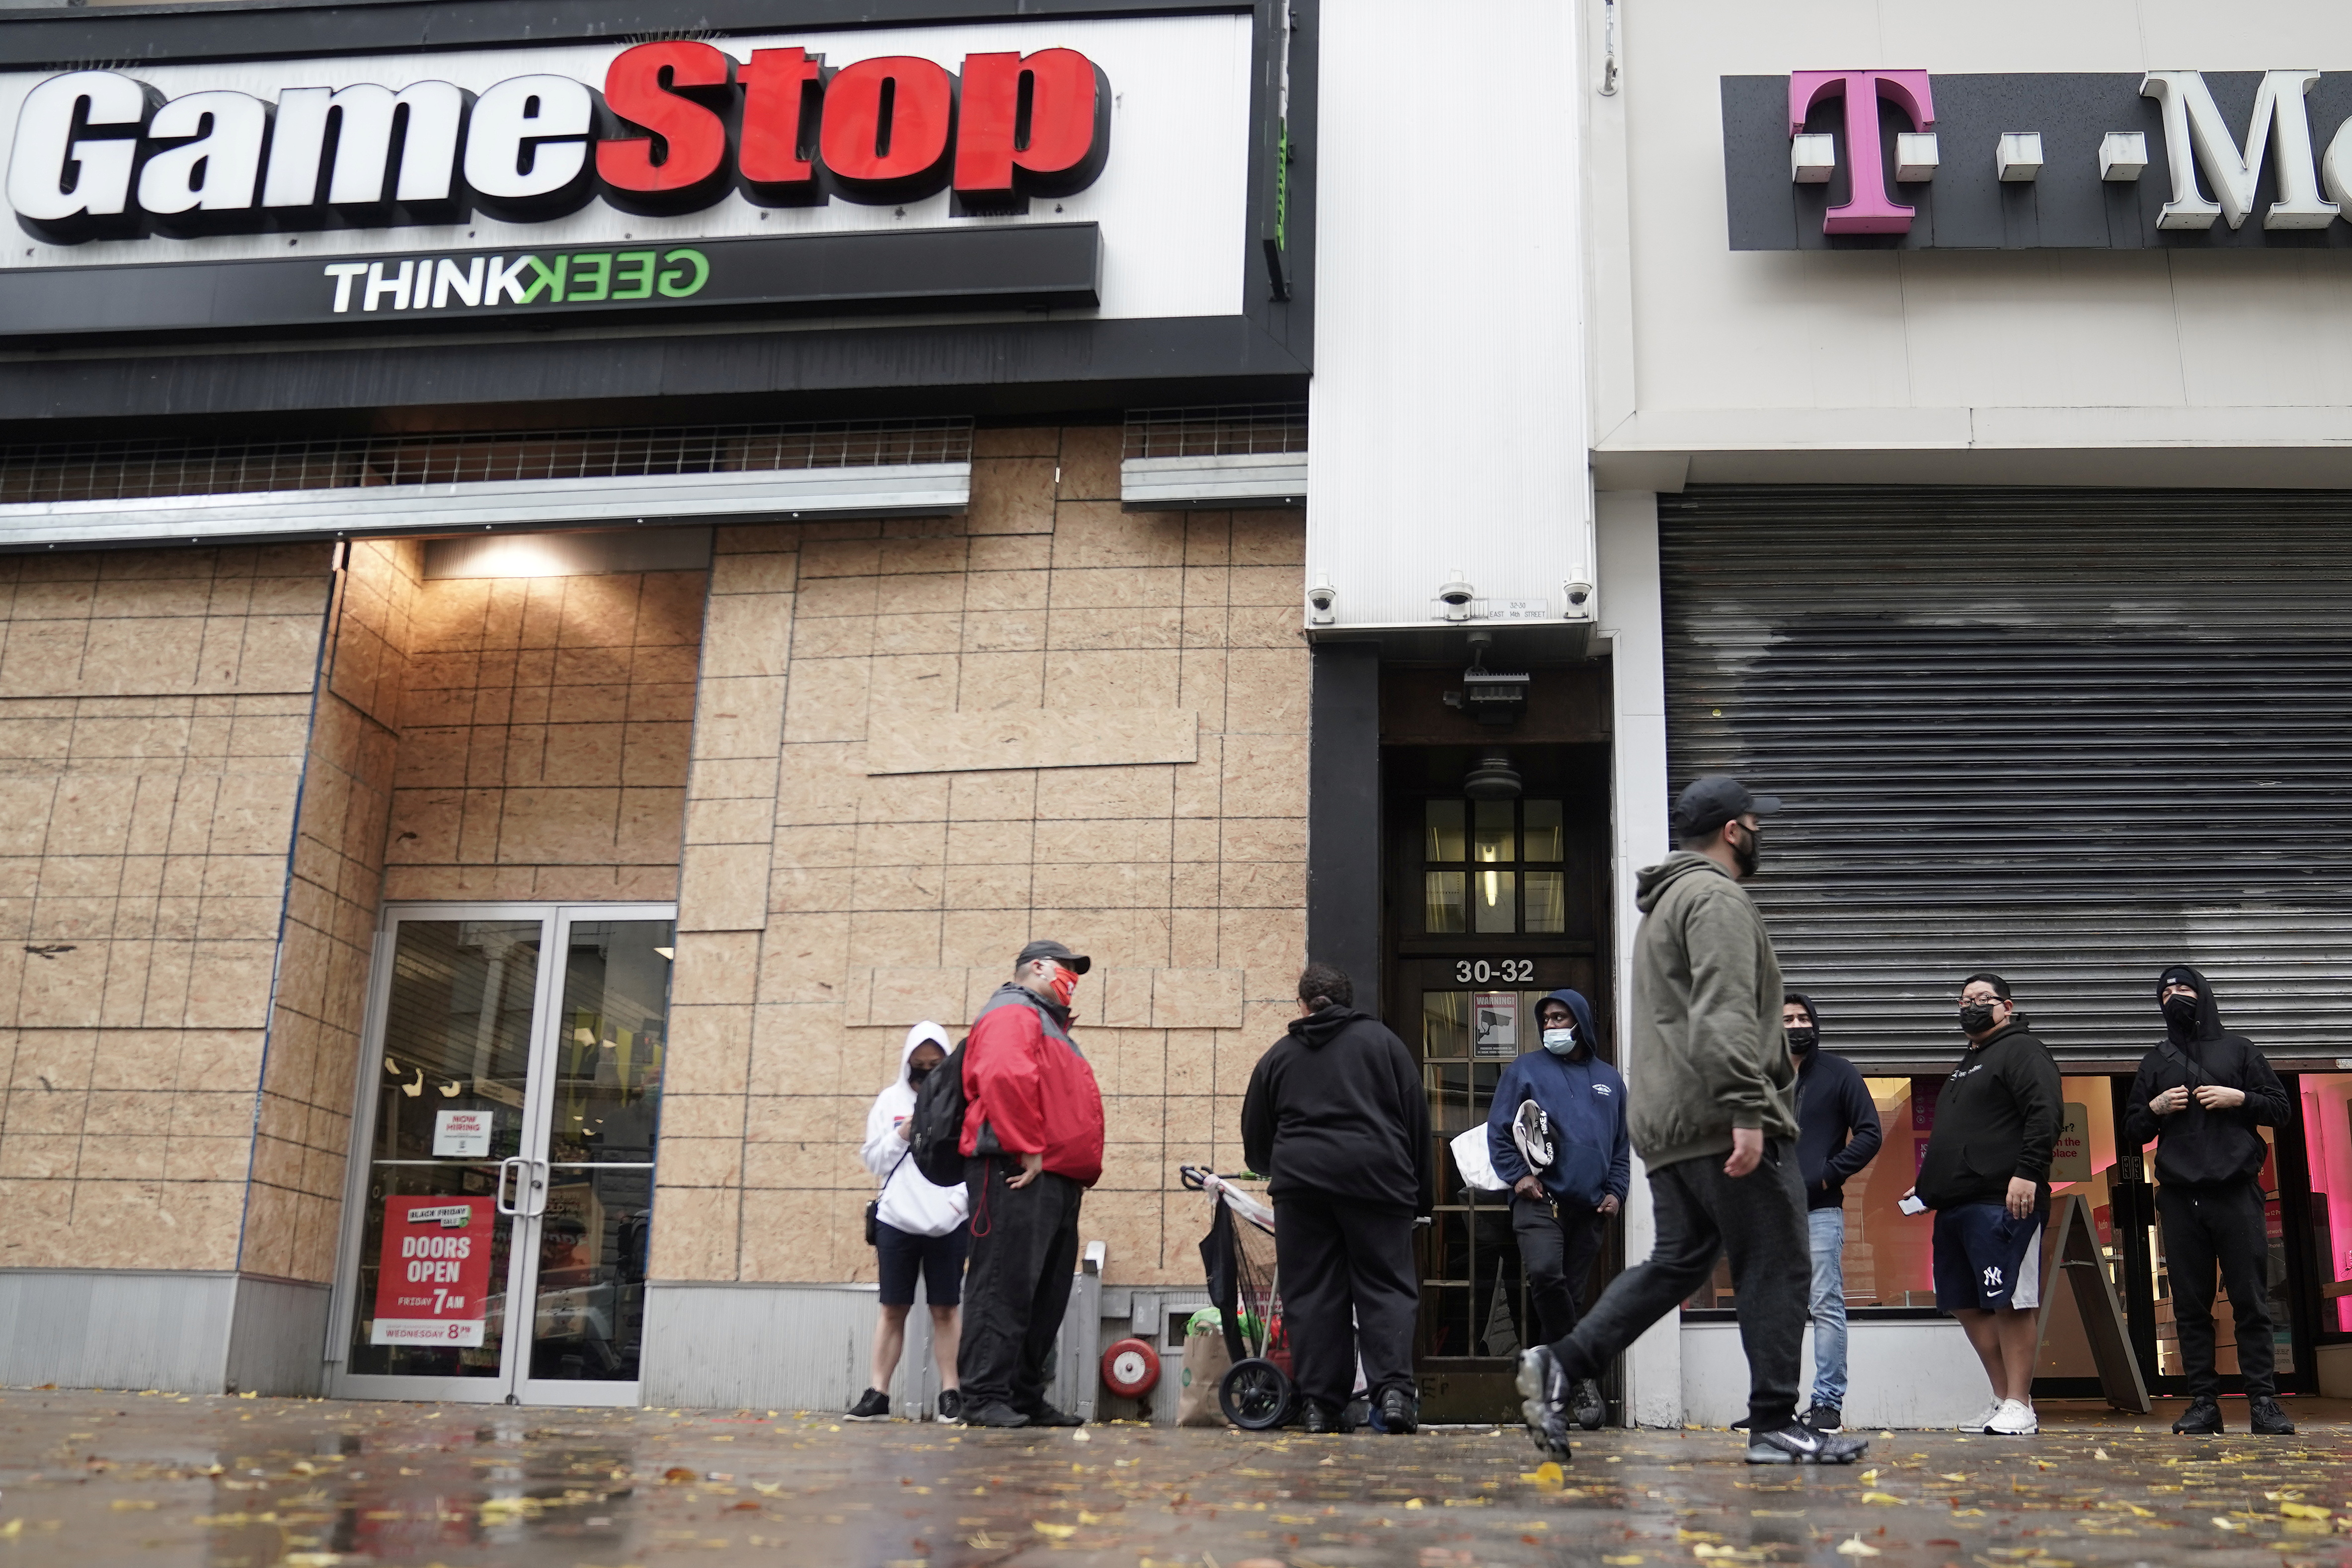 Outside a GameStop store people line up to purchase a Sony PS5 gaming console in the Manhattan borough of New York City, New York, U.S., November 12, 2020. REUTERS/Carlo Allegri